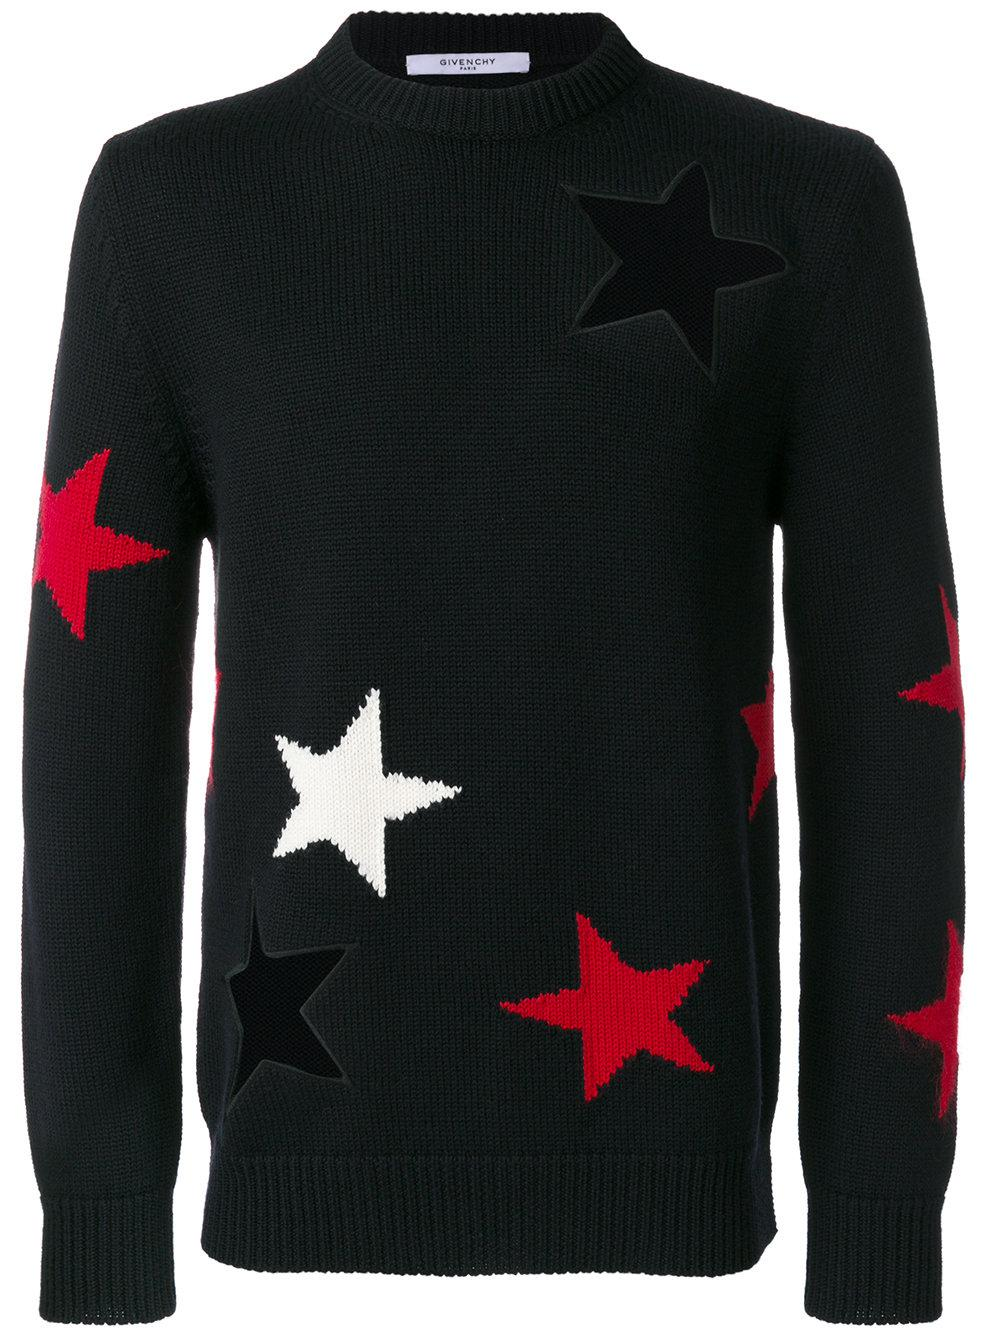 lyst givenchy star cutout sweater in black for men. Black Bedroom Furniture Sets. Home Design Ideas